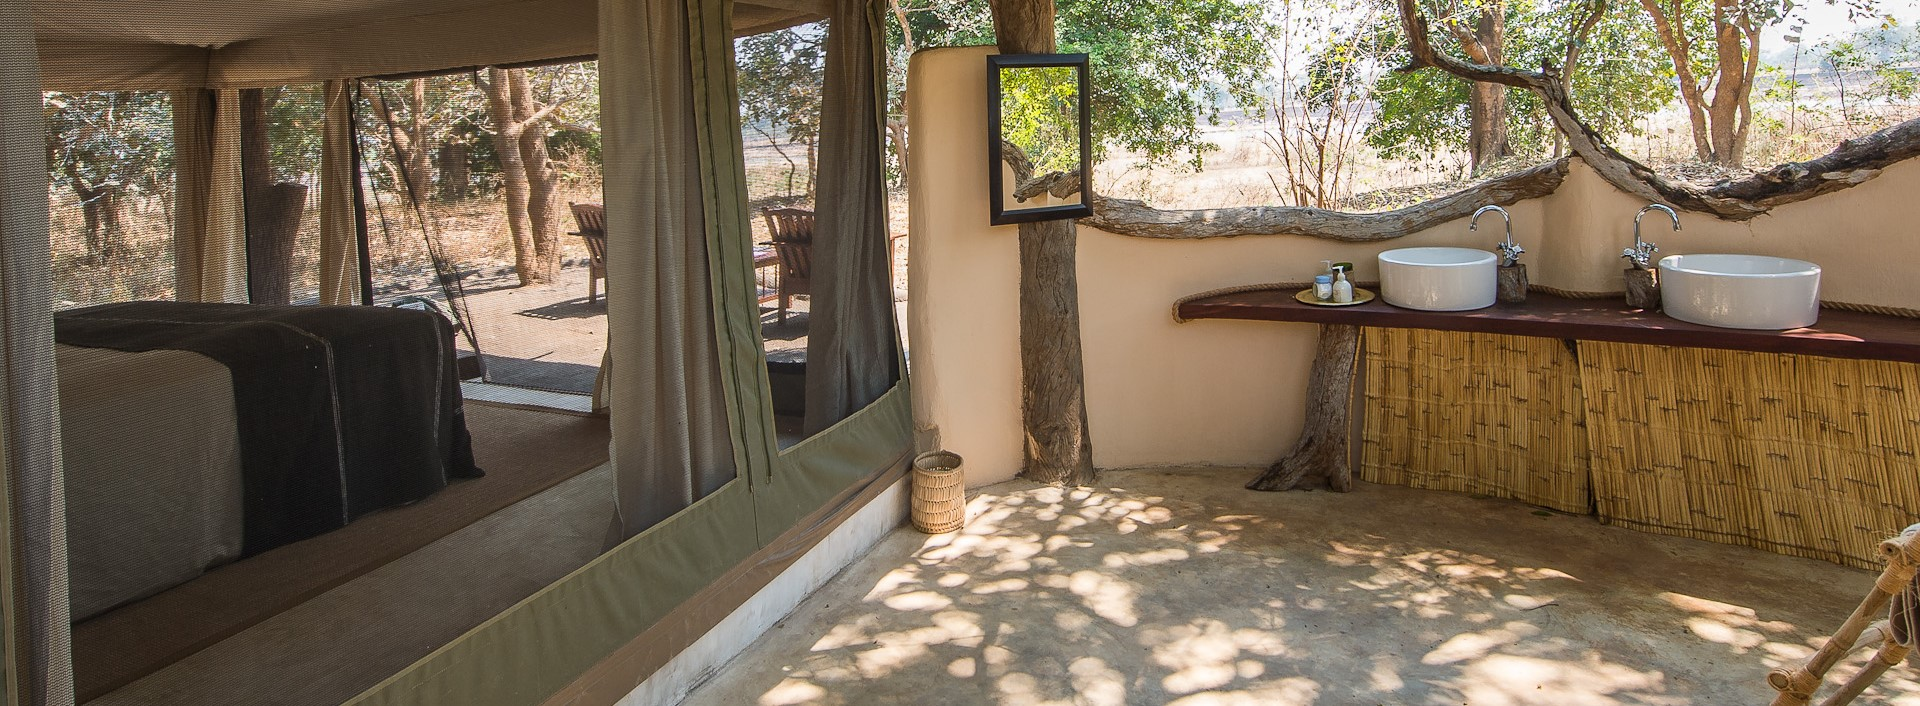 tena-tena-camp-safari-tent-bathroom